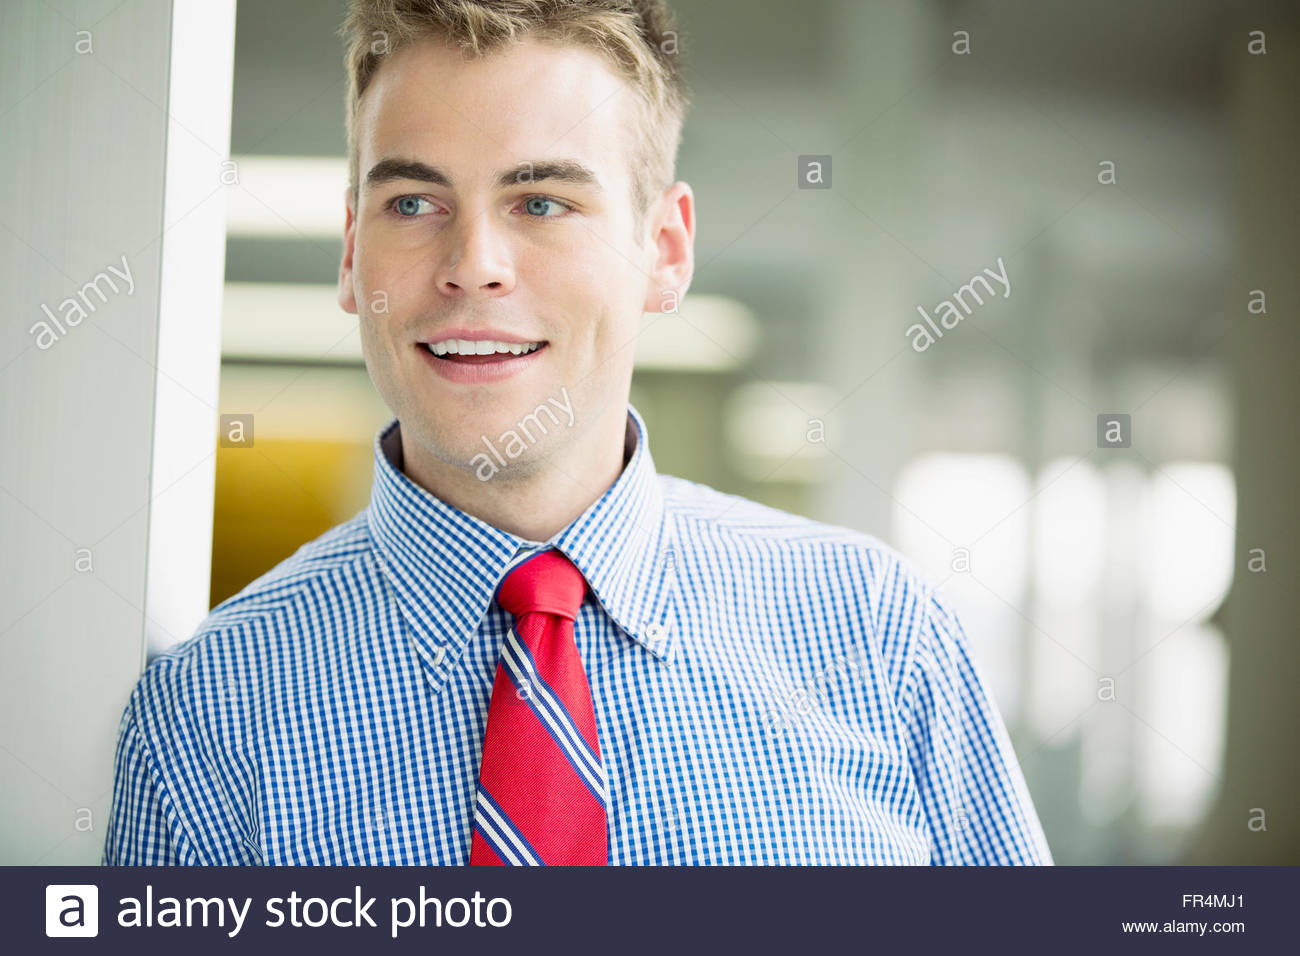 handsome young adult male office worker - Stock Image